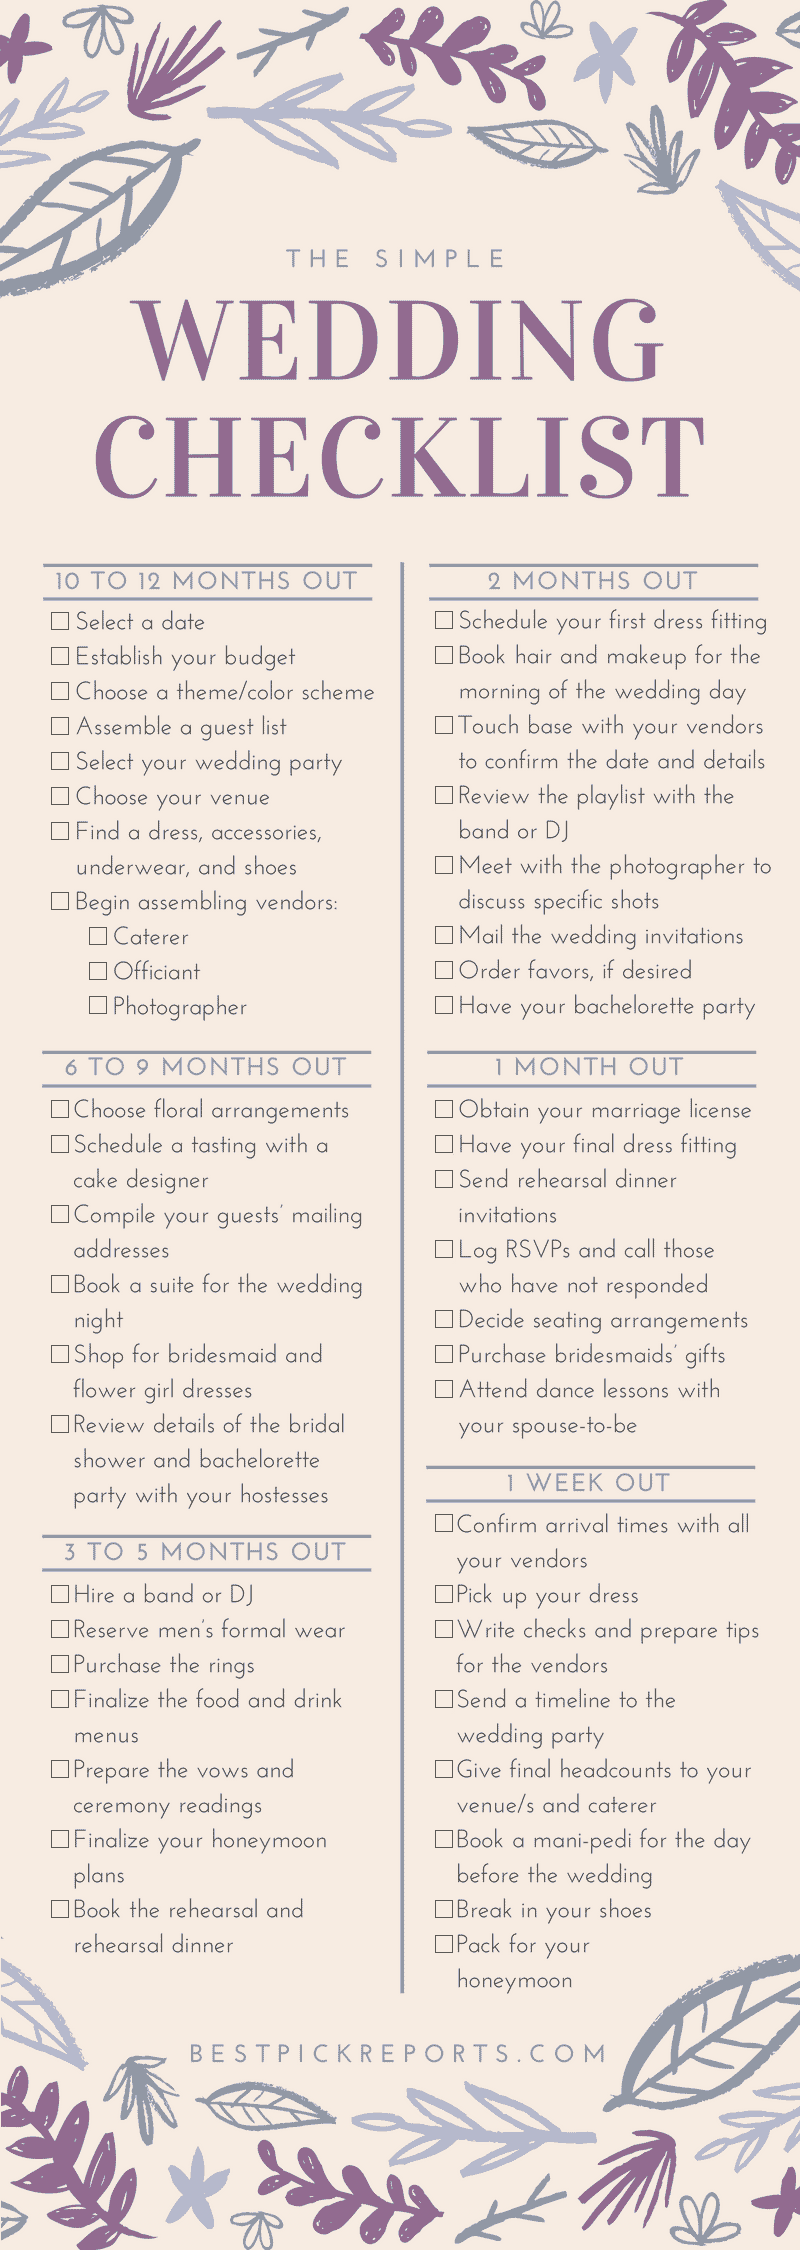 bride u2019s complete checklist for a simple wedding